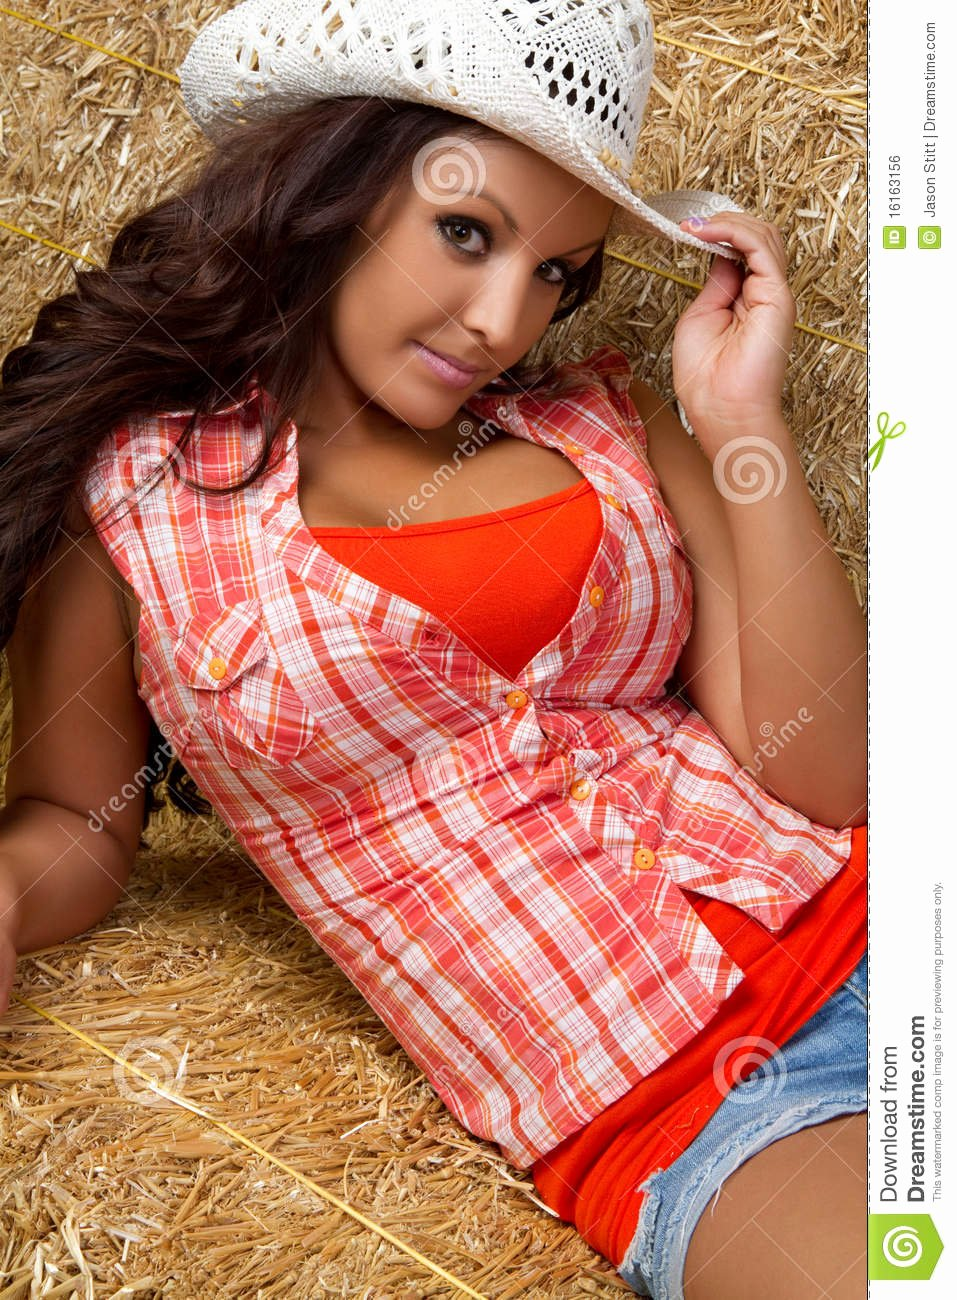 Free Sexy Women Photos Unique Country Girl Stock Photo Image Of attractive People